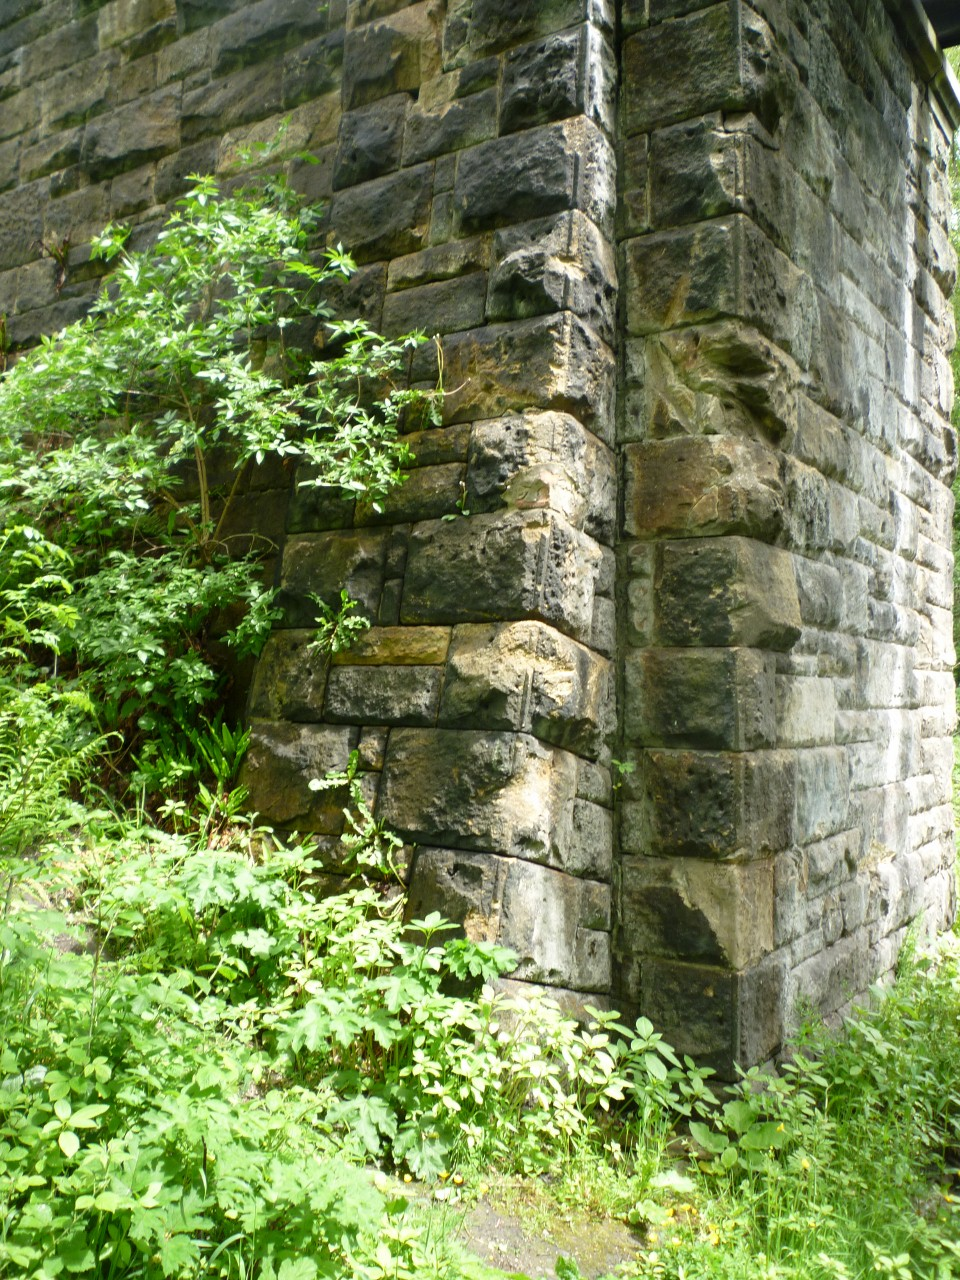 Scars on a bridge abutment at Beamish from the 1964 accident. Photo copyright John Aiston